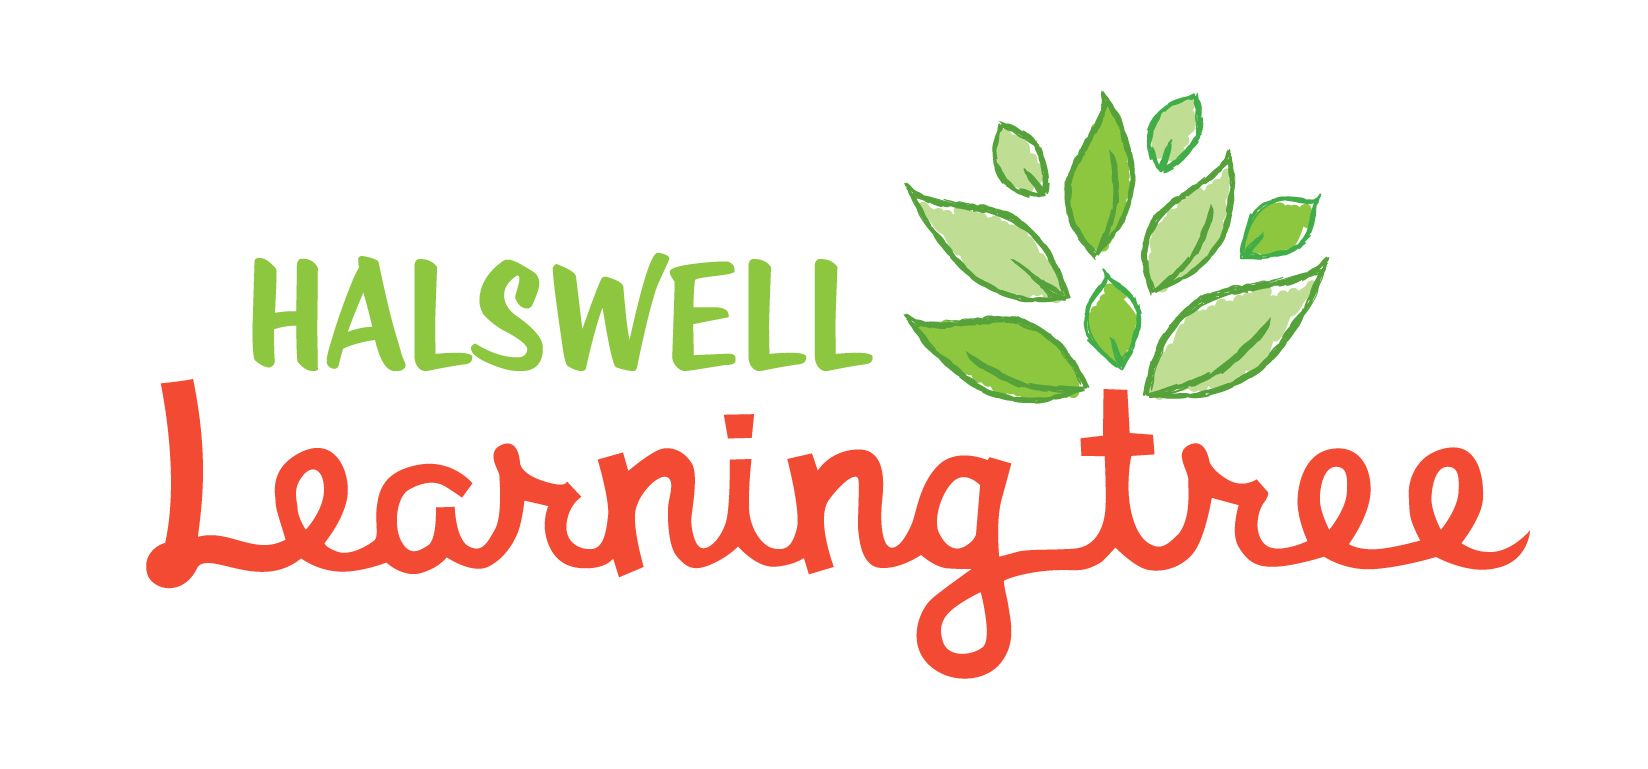 Halswell Learning Tree